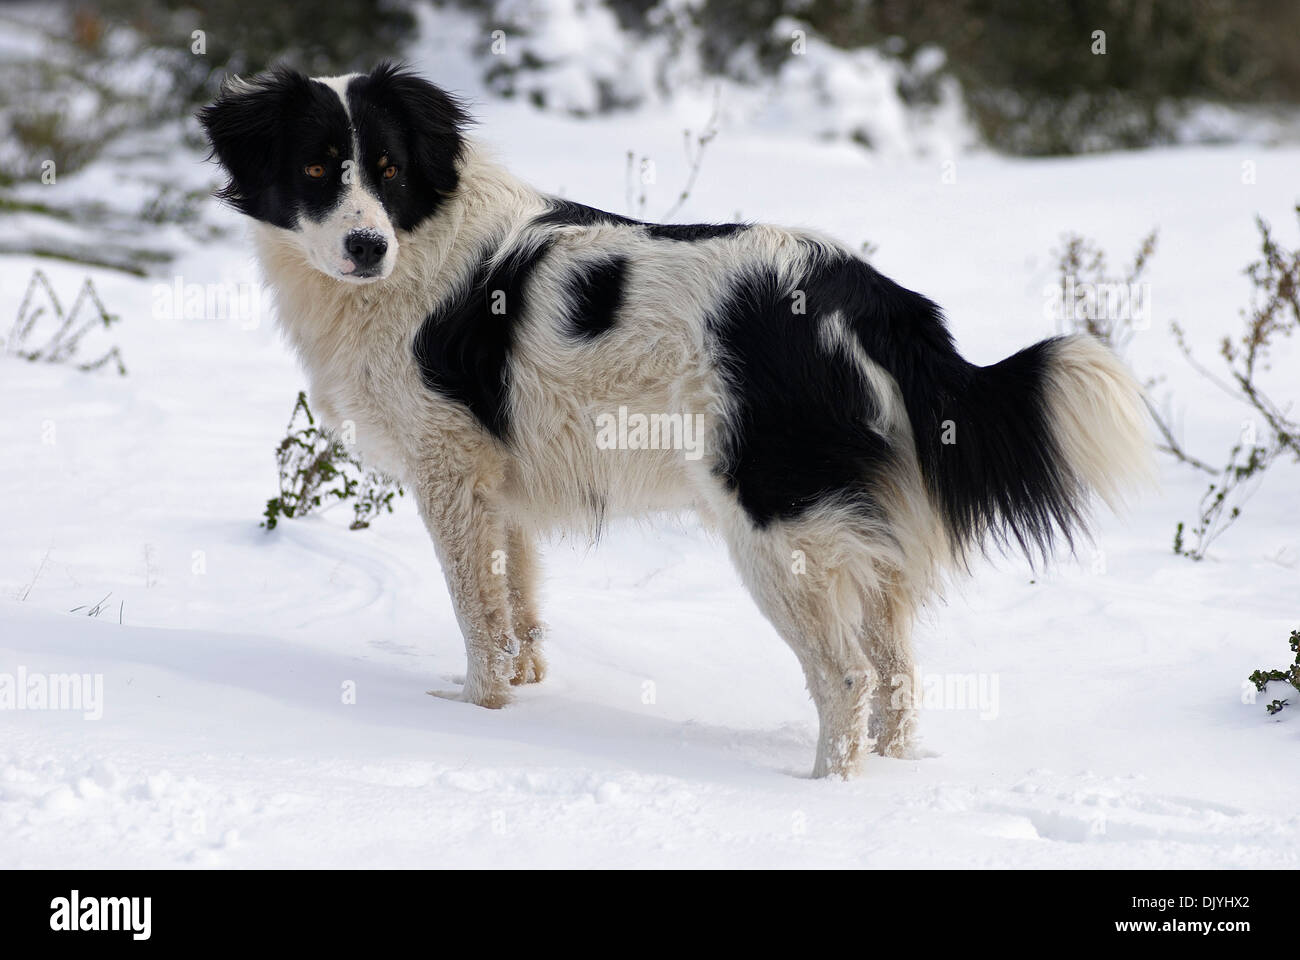 Border Collie standing in snow - Stock Image